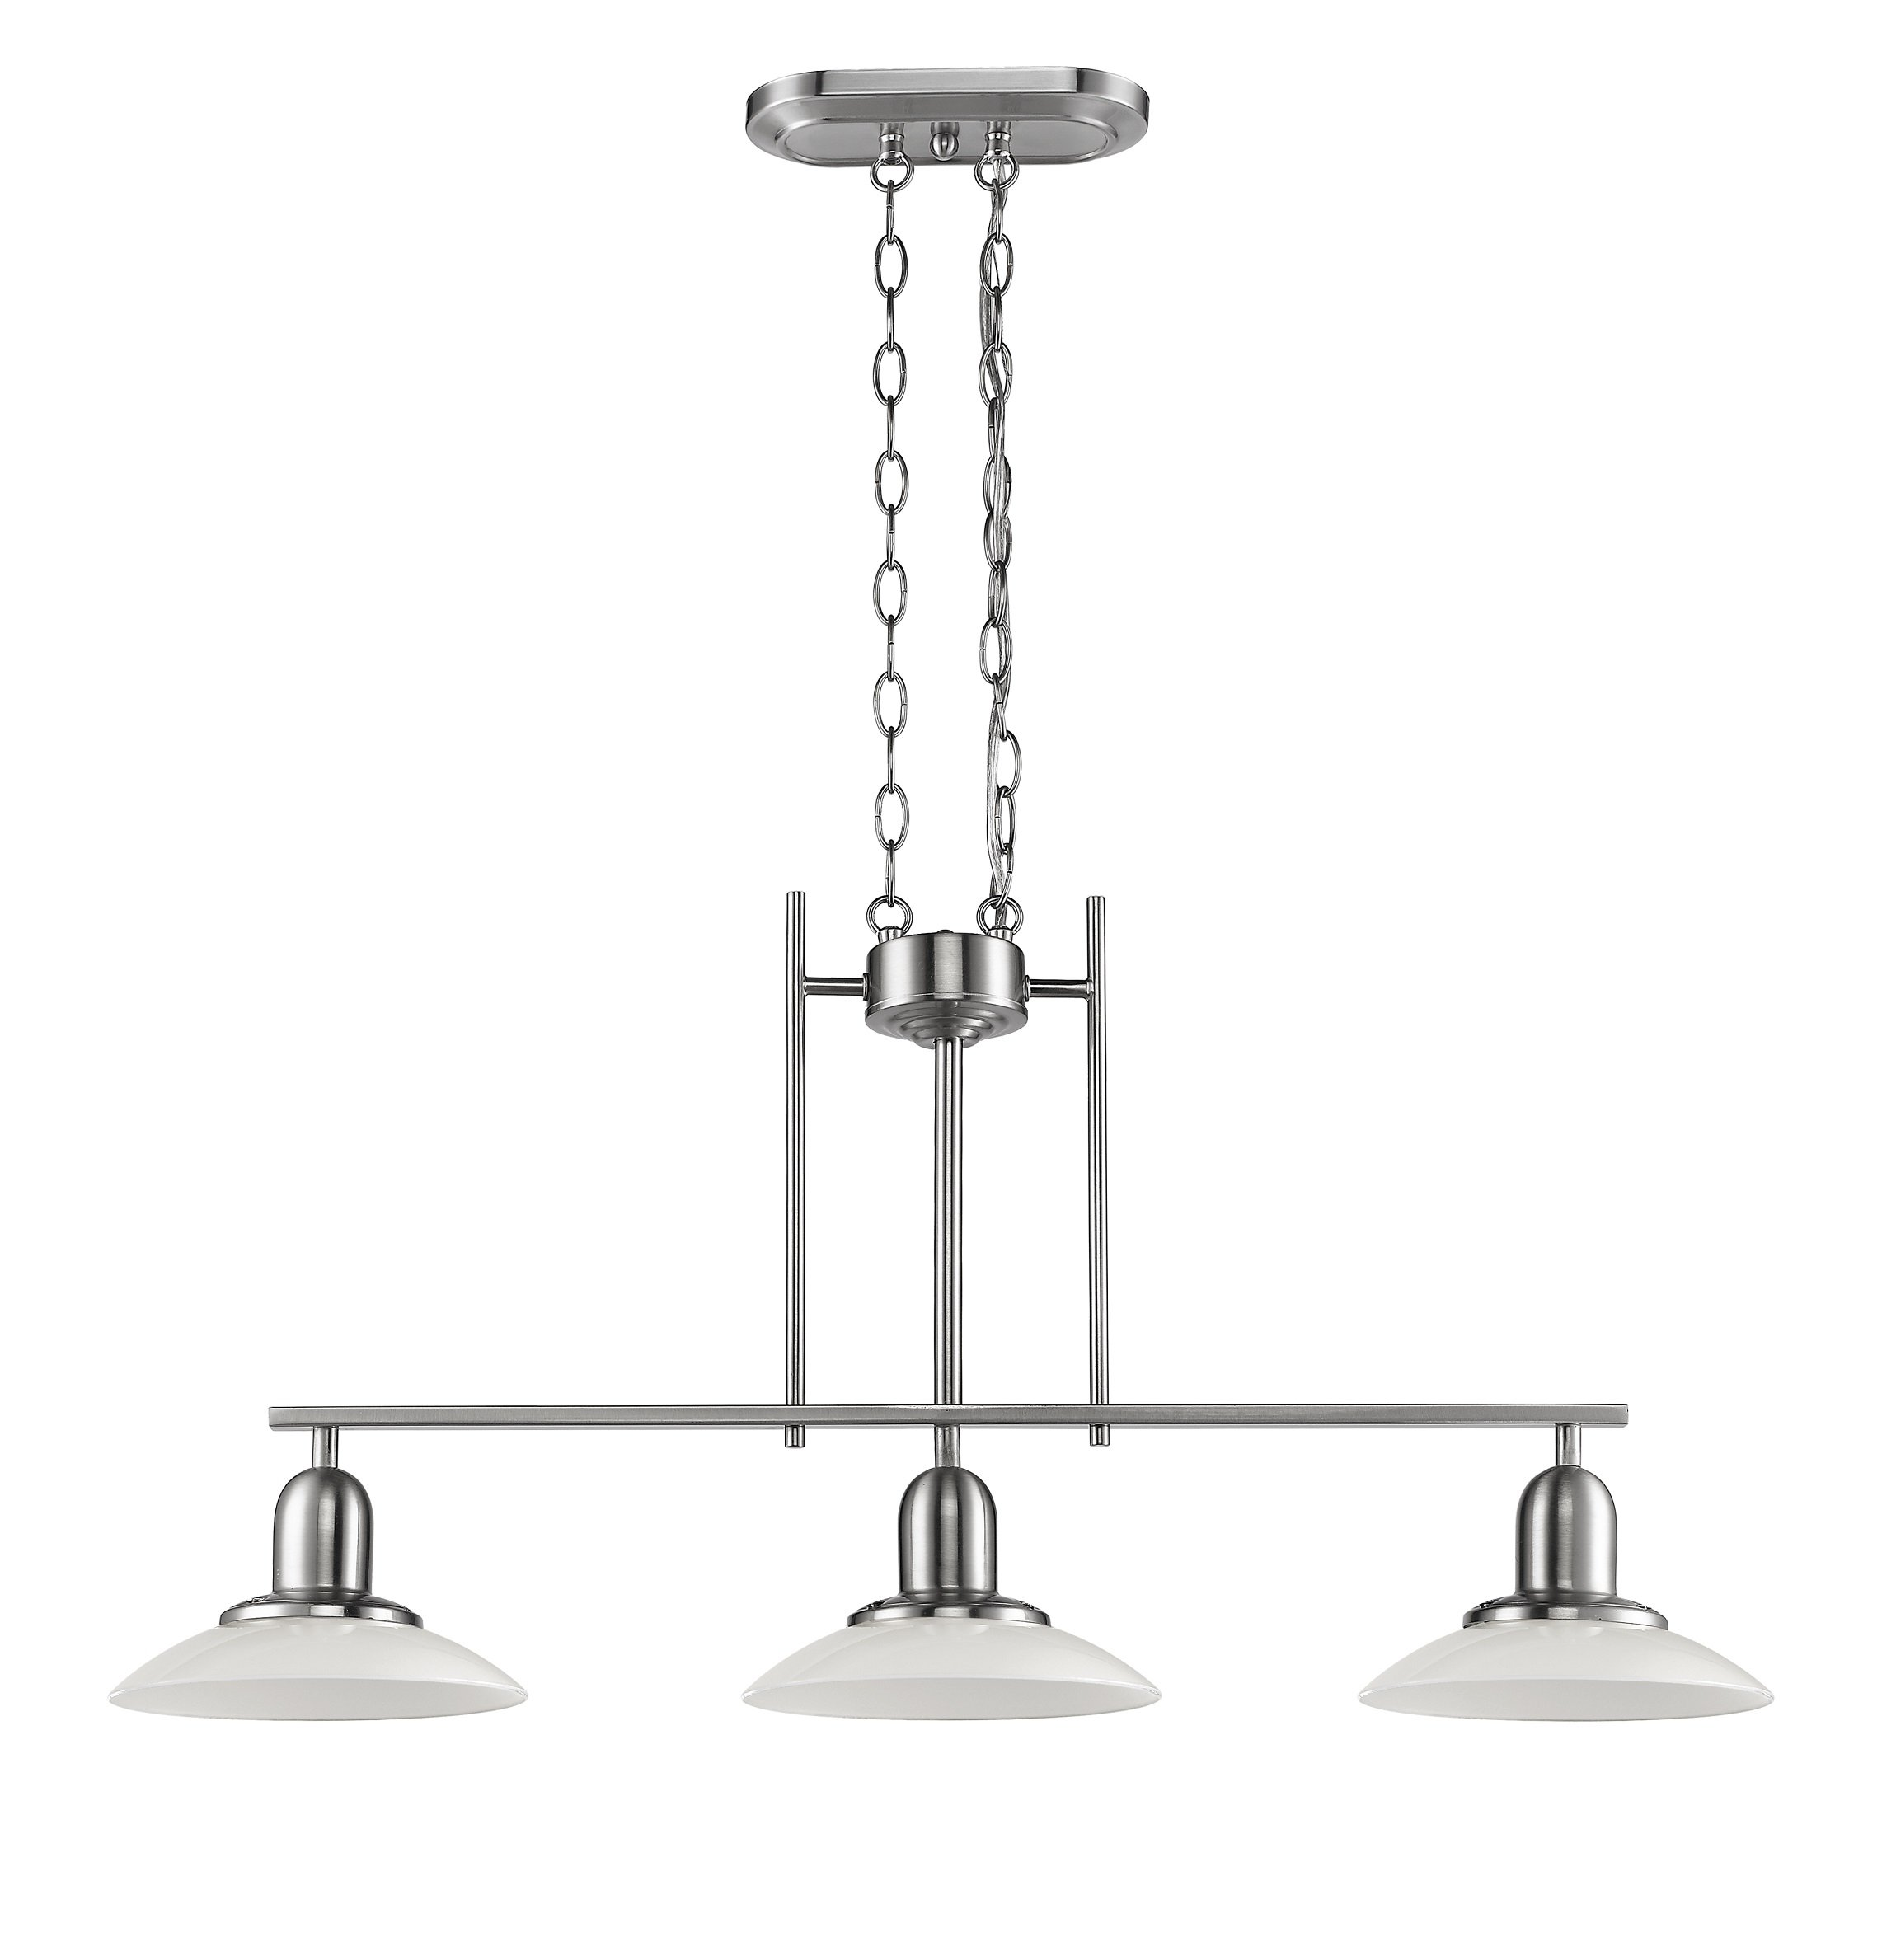 Chloe Lighting CH28001BN32-IL3 Neleh Transitional 3-Light Island Fixture, 32'', Brushed Nickel